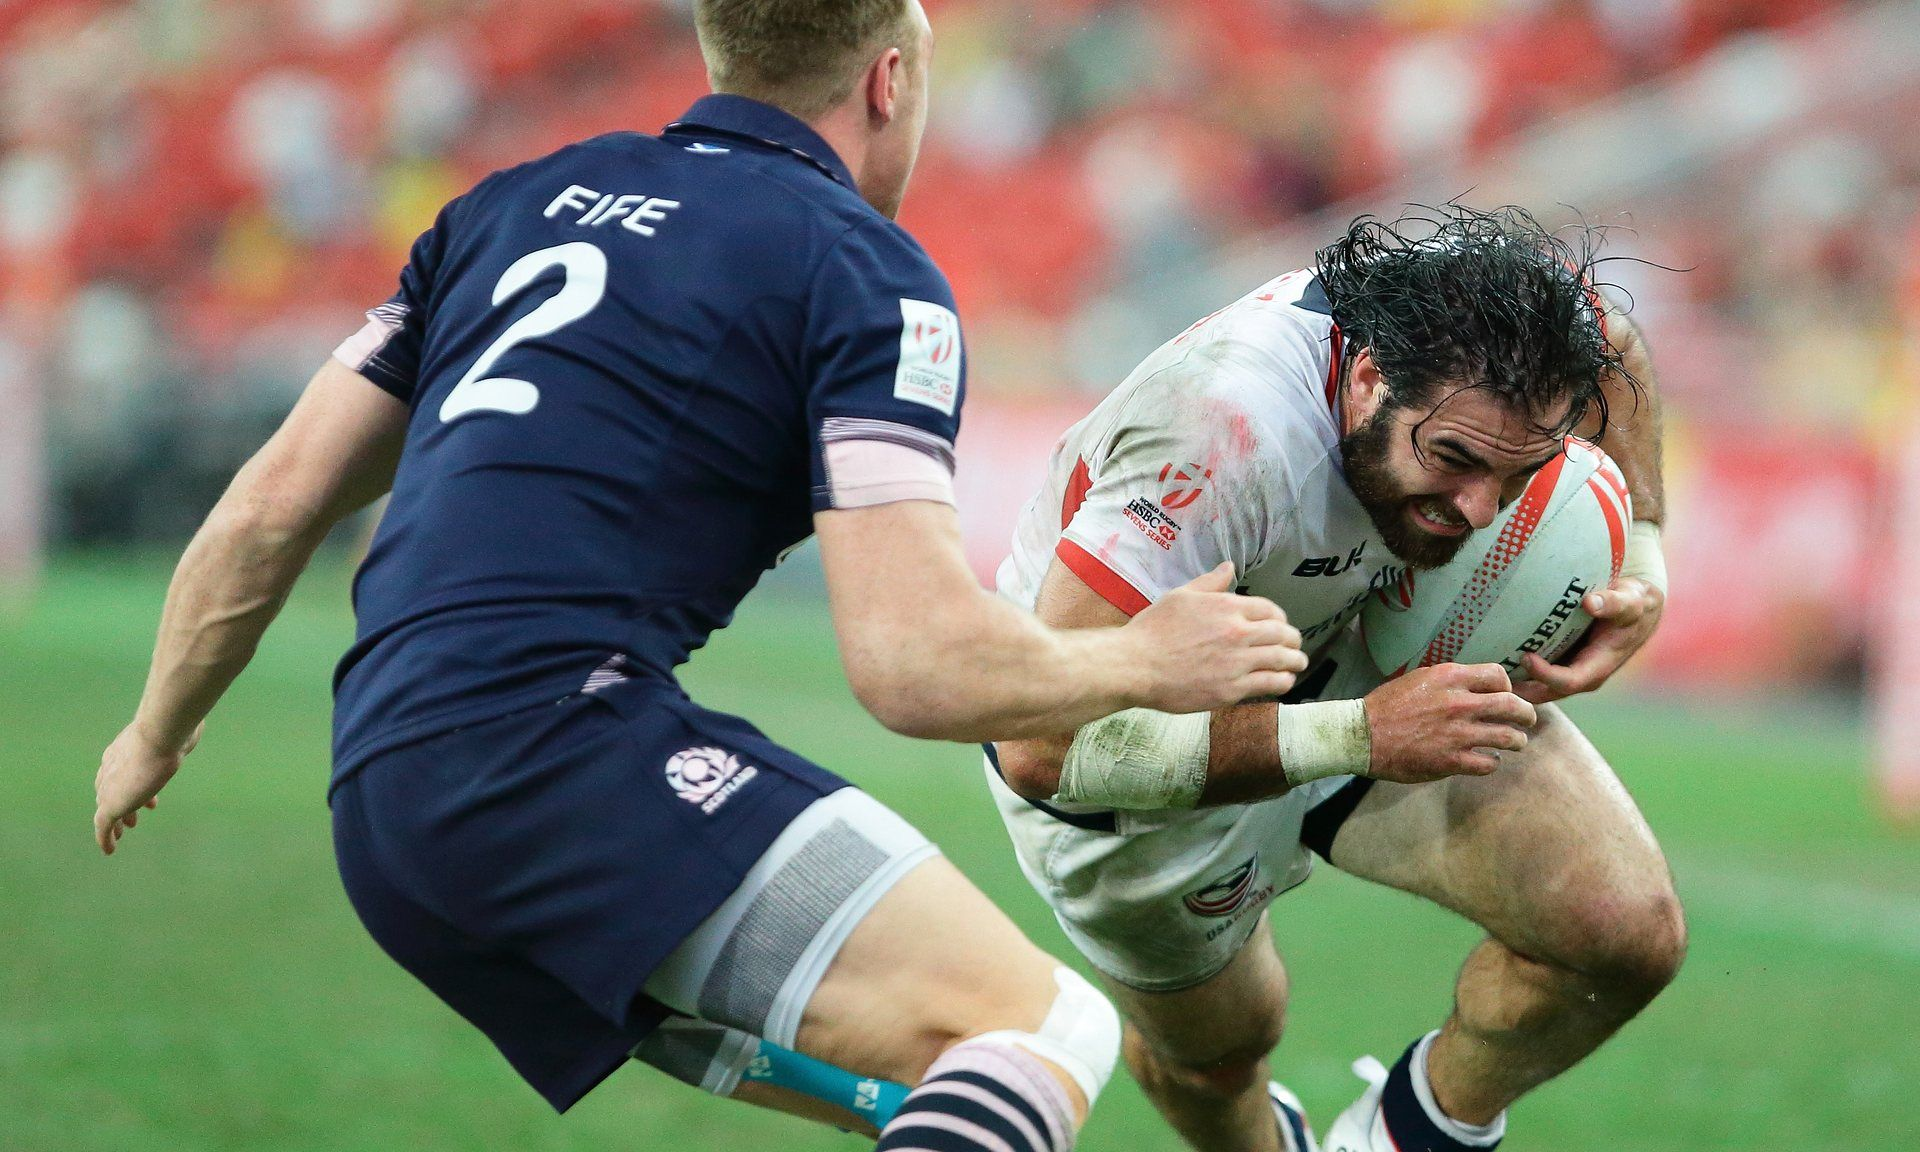 Nfl Player Nate Ebner Selected For Us Olympic Rugby Sevens Squad Usa Rugby Team Usa Rugby Rugby Team